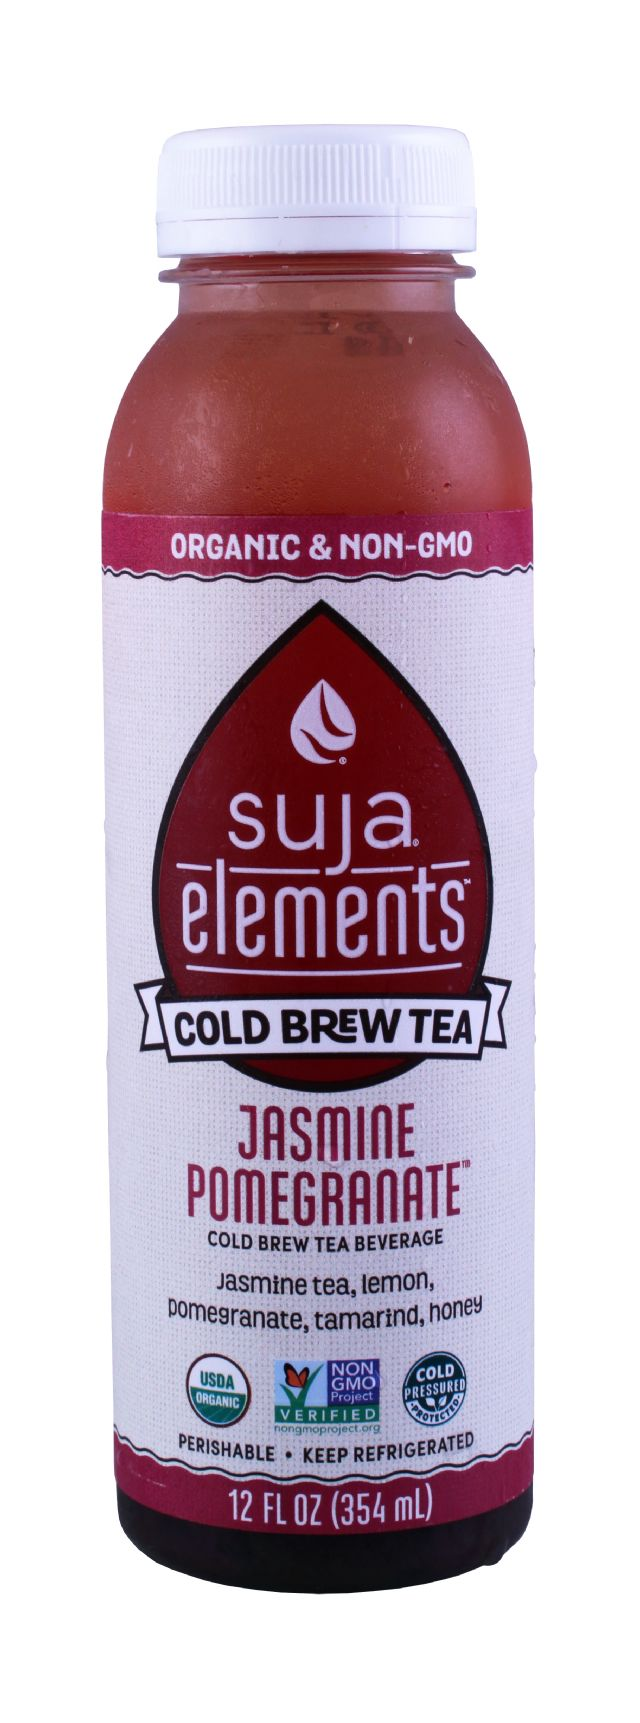 Suja Elements Cold Brew Tea: Suja JasminePom Front